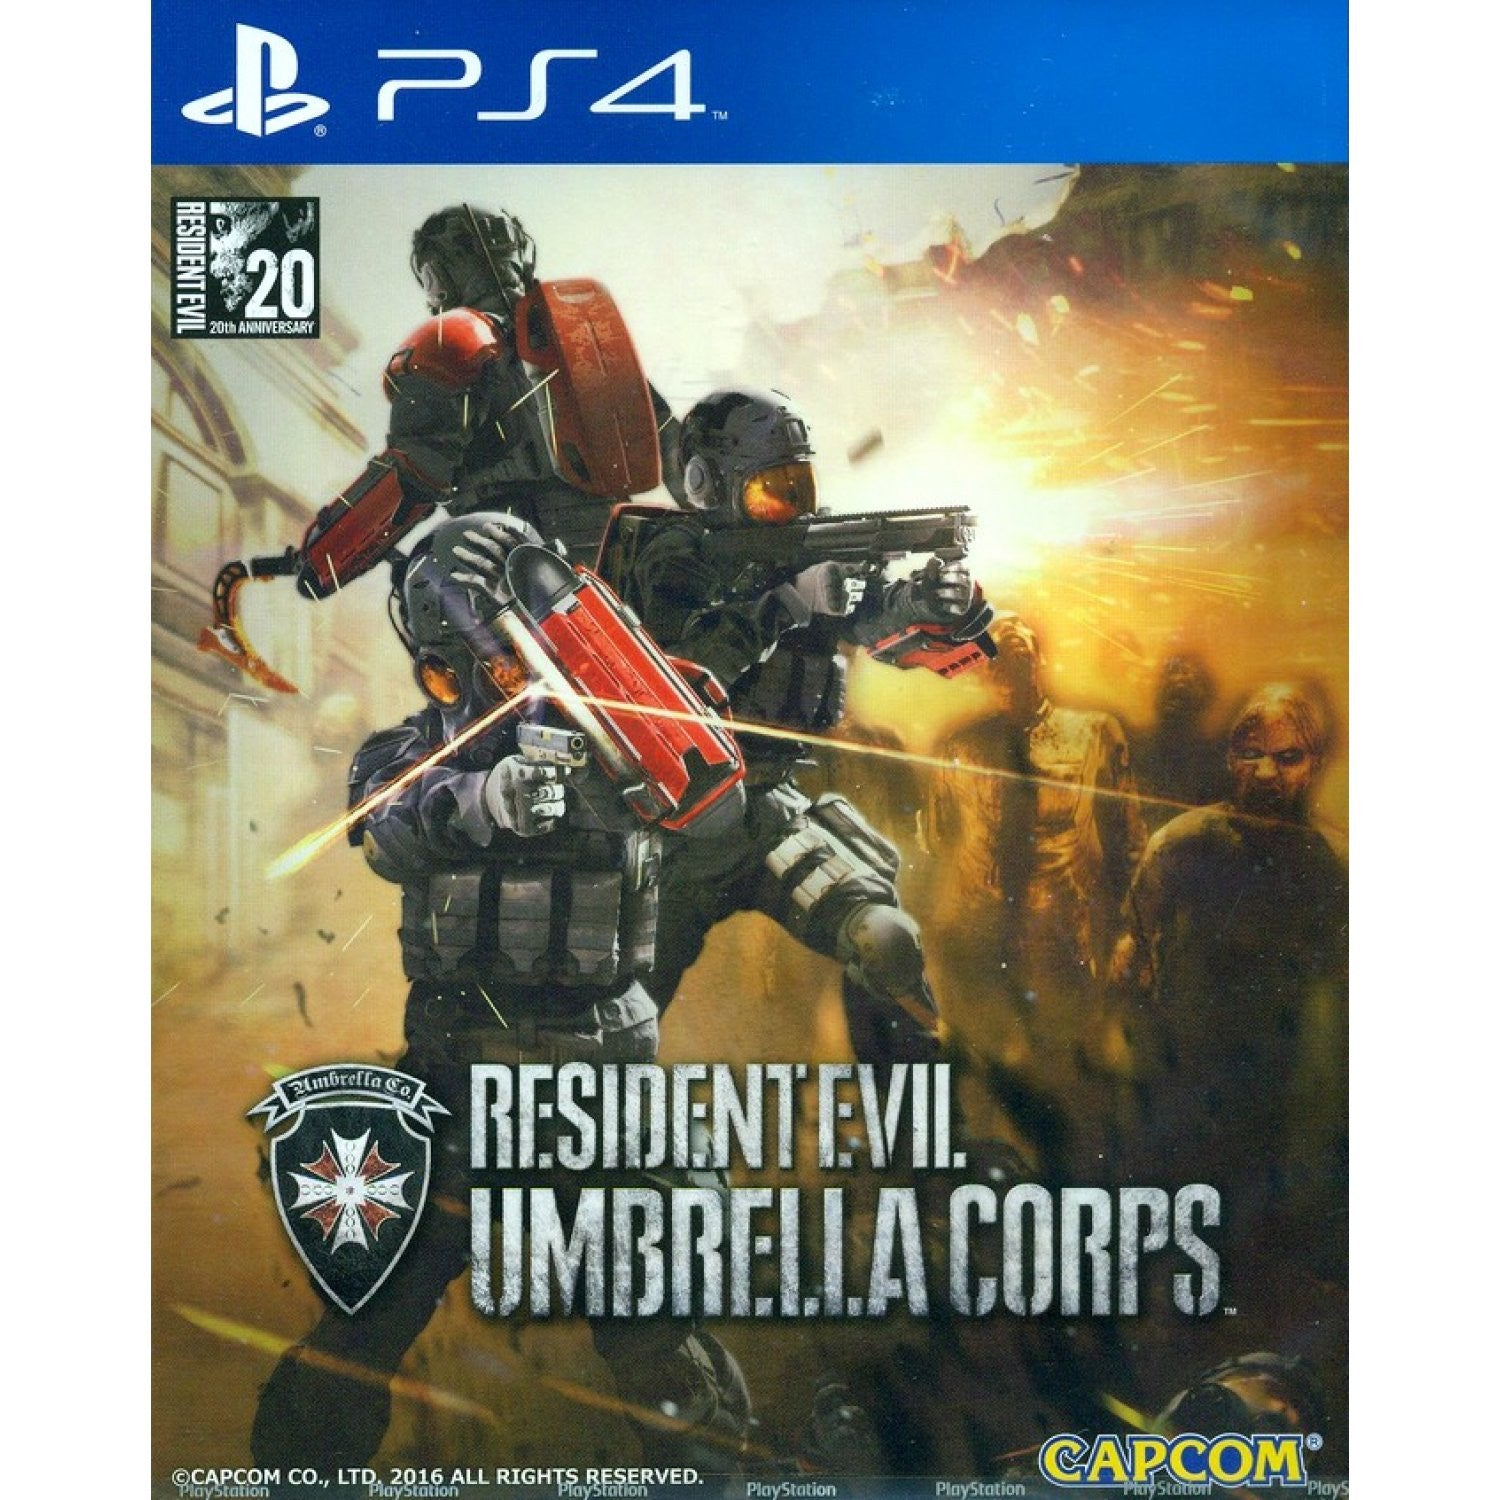 Game Page 29 Ps4 Romance Of The Three Kingdoms Xiii Reg 3 Resident Evil Umbrella Corps